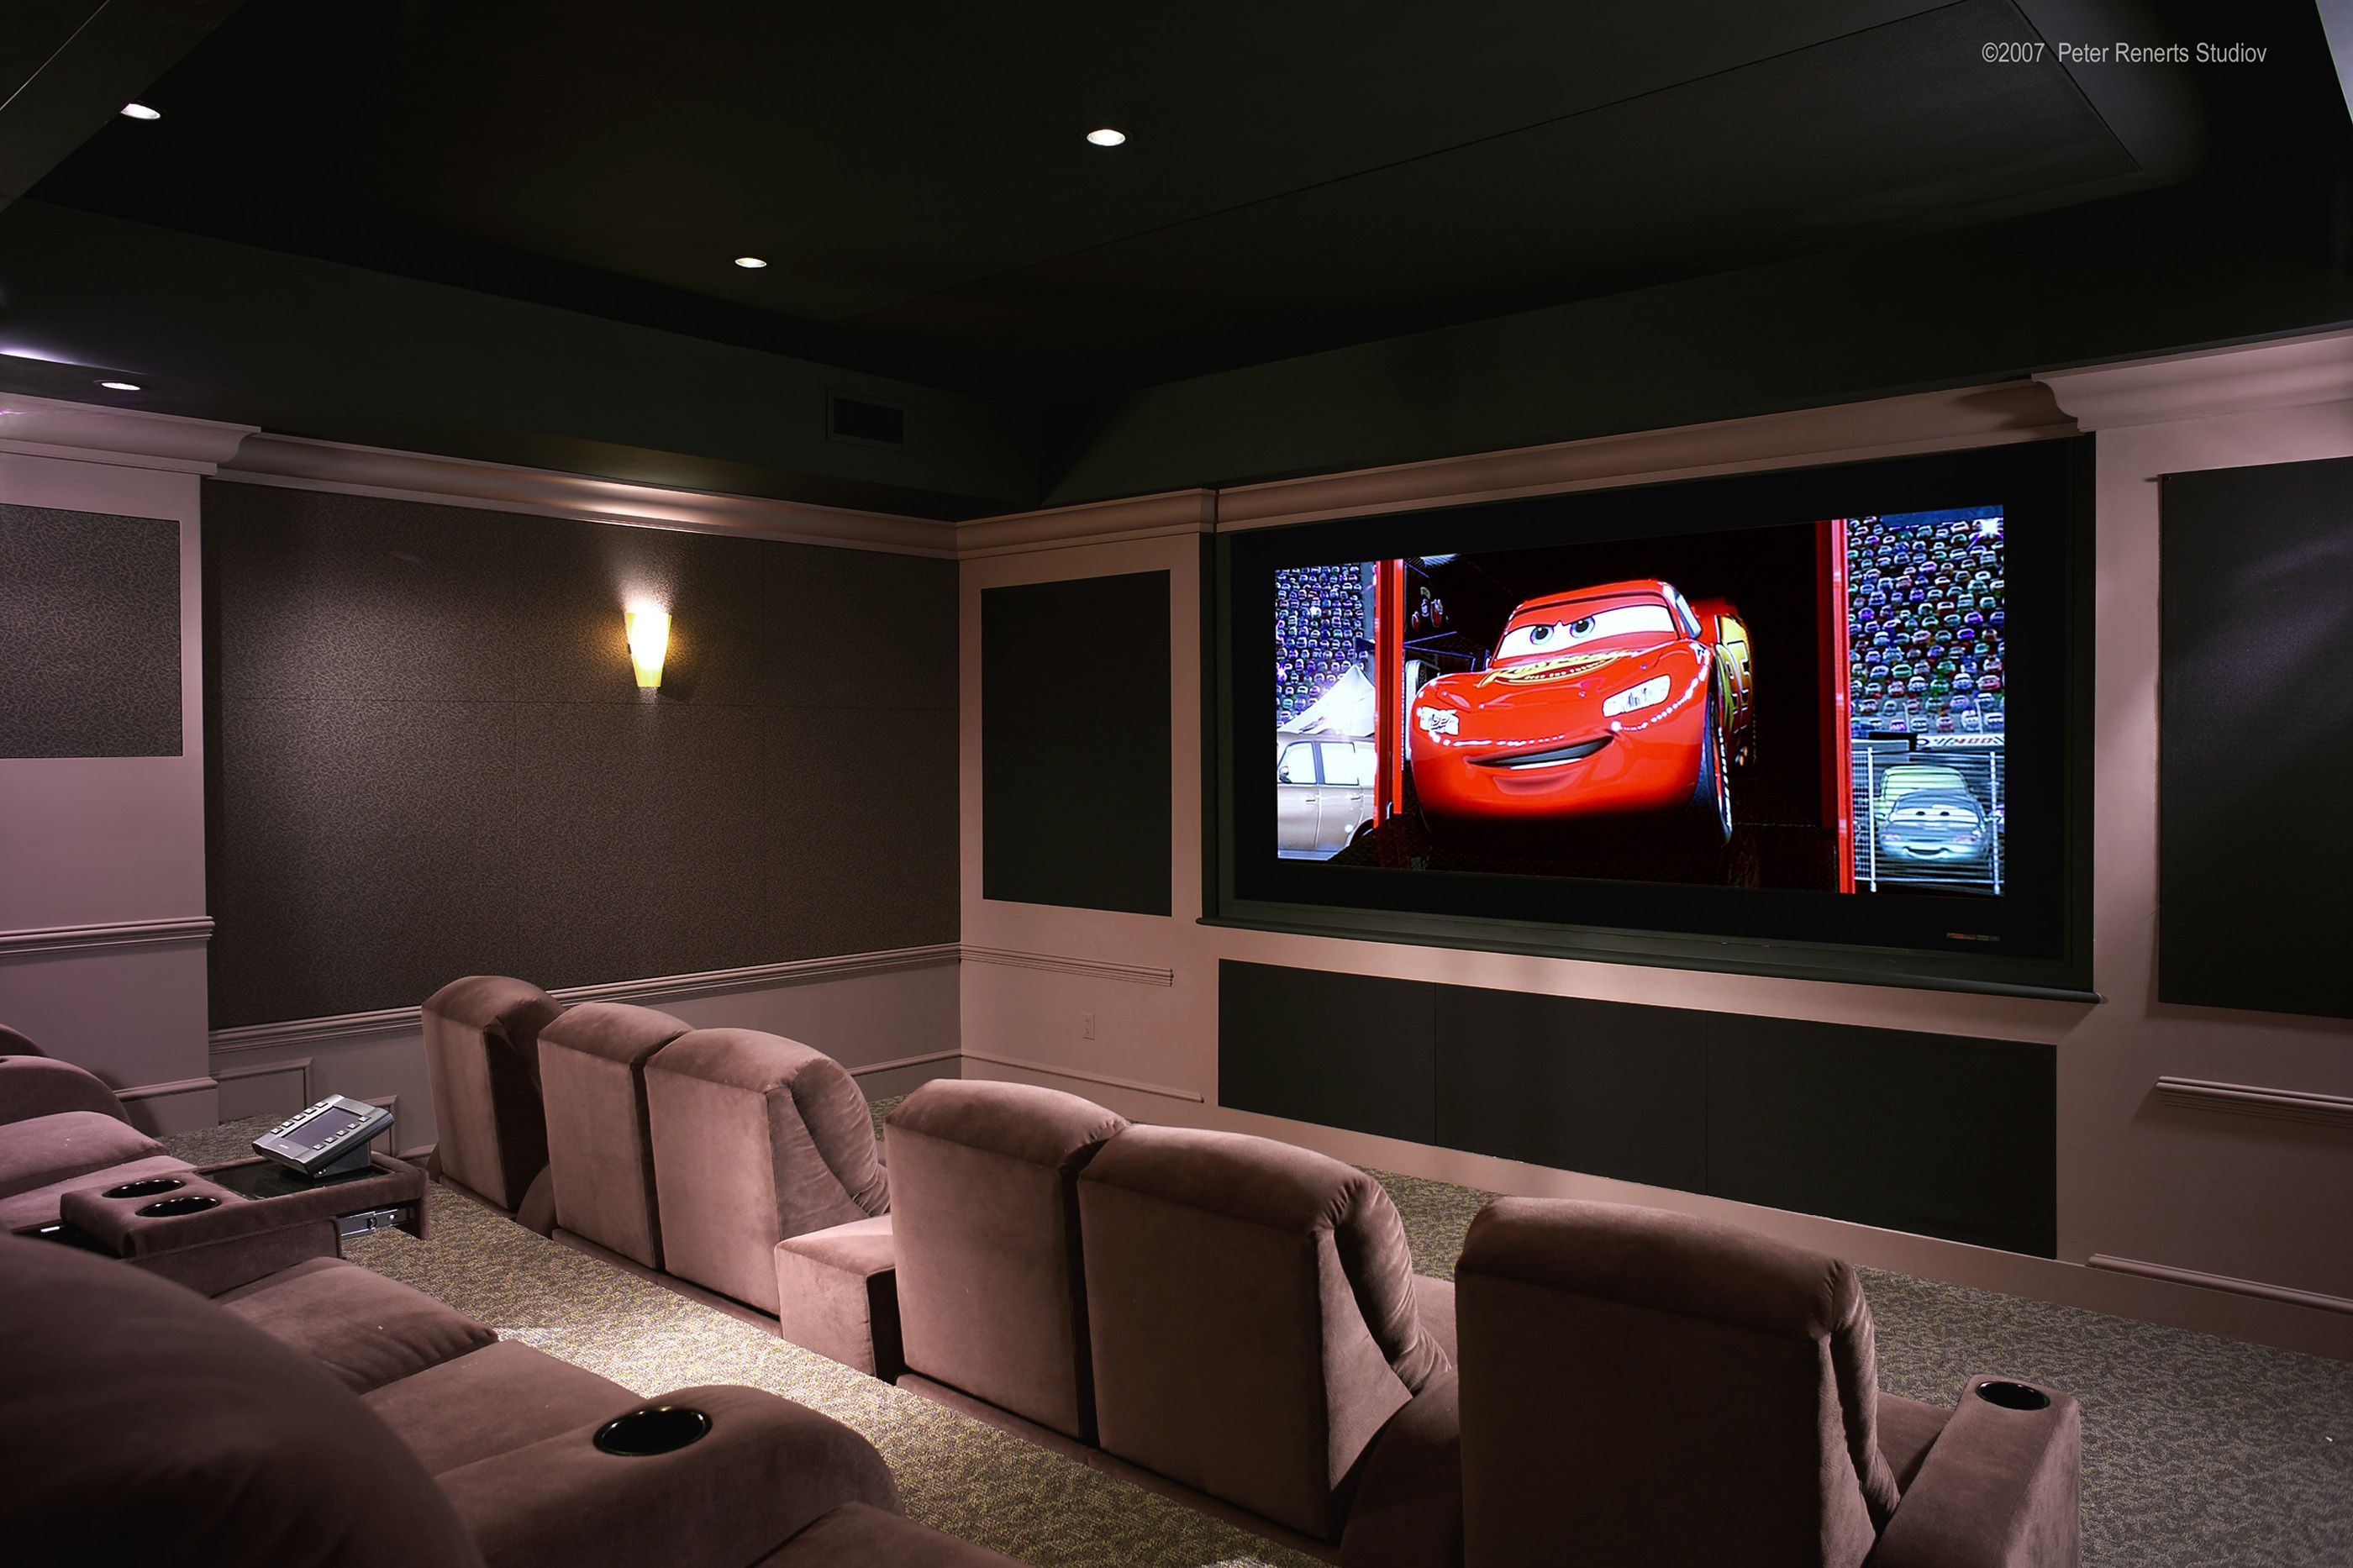 Home Theater Room Design Ideas home theater layout ideas home theater room design ideas home theater room designs interior with resolution 1000 Images About Home Theatre On Pinterest Home Theatre Cinema Room And Home Theaters